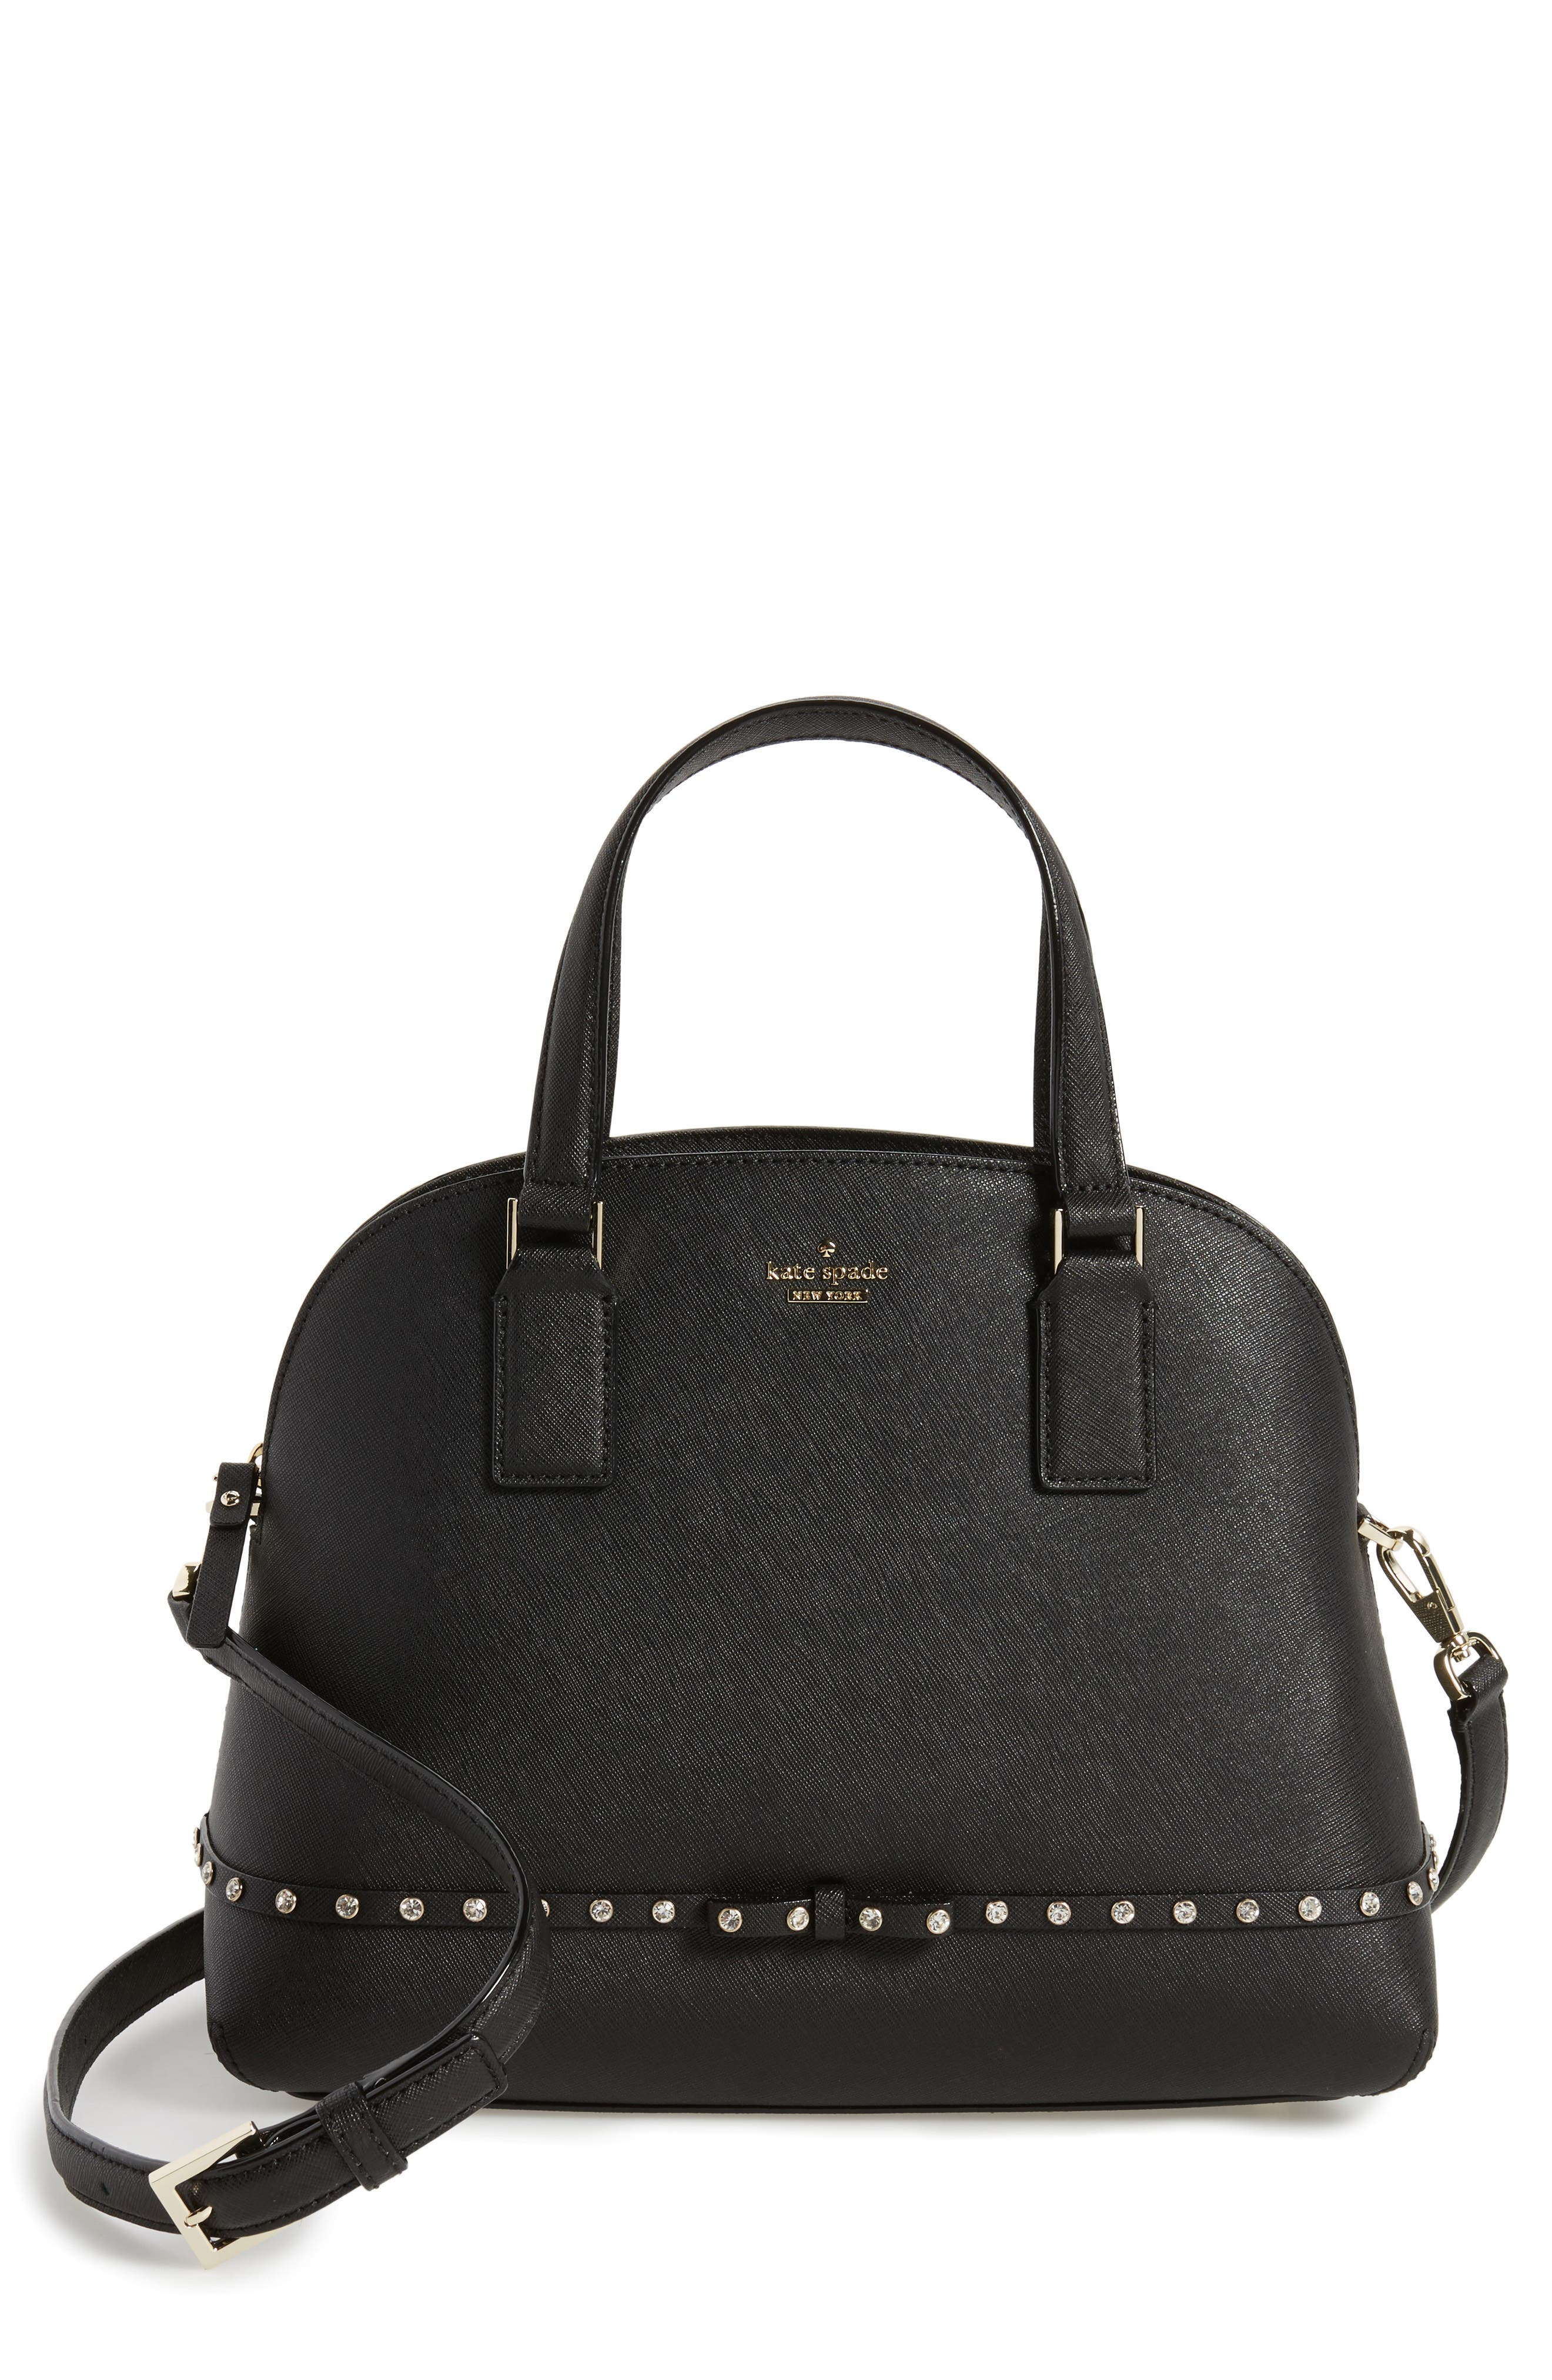 cameron street - jeweled lottie leather satchel,                             Main thumbnail 1, color,                             001